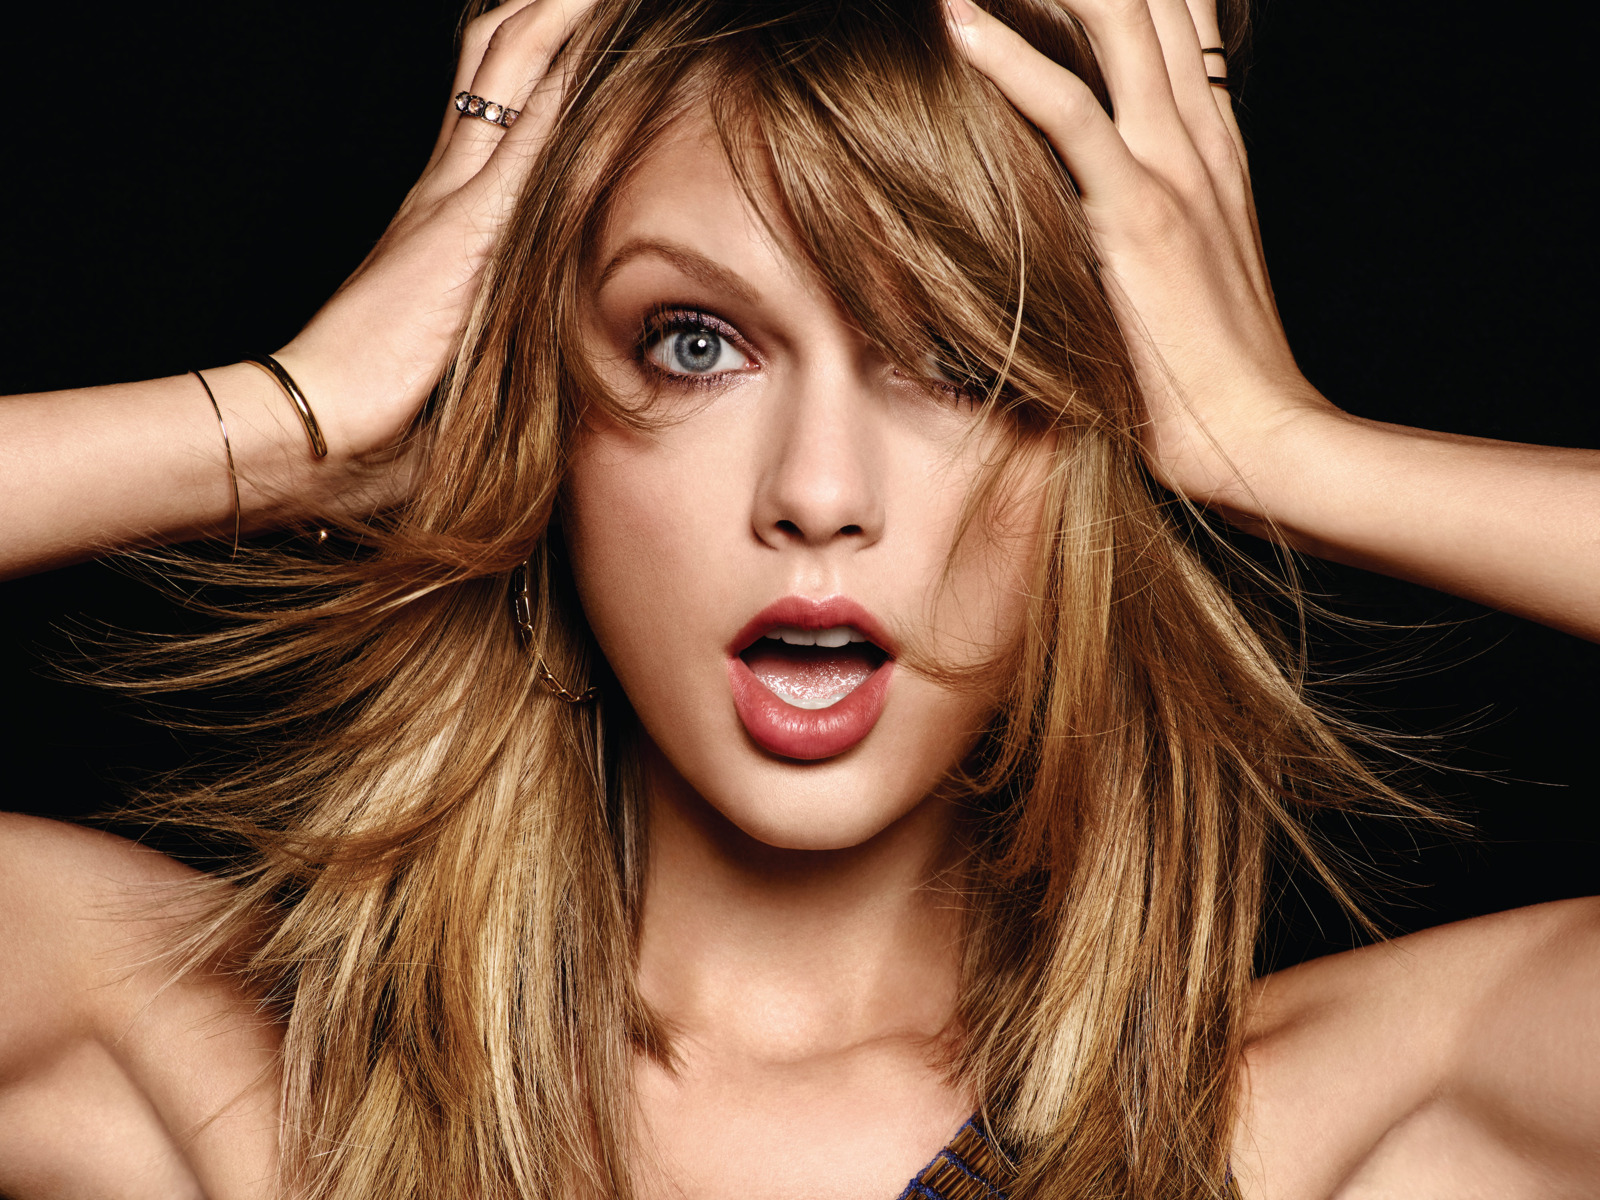 taylor swift most hated women in hollywood